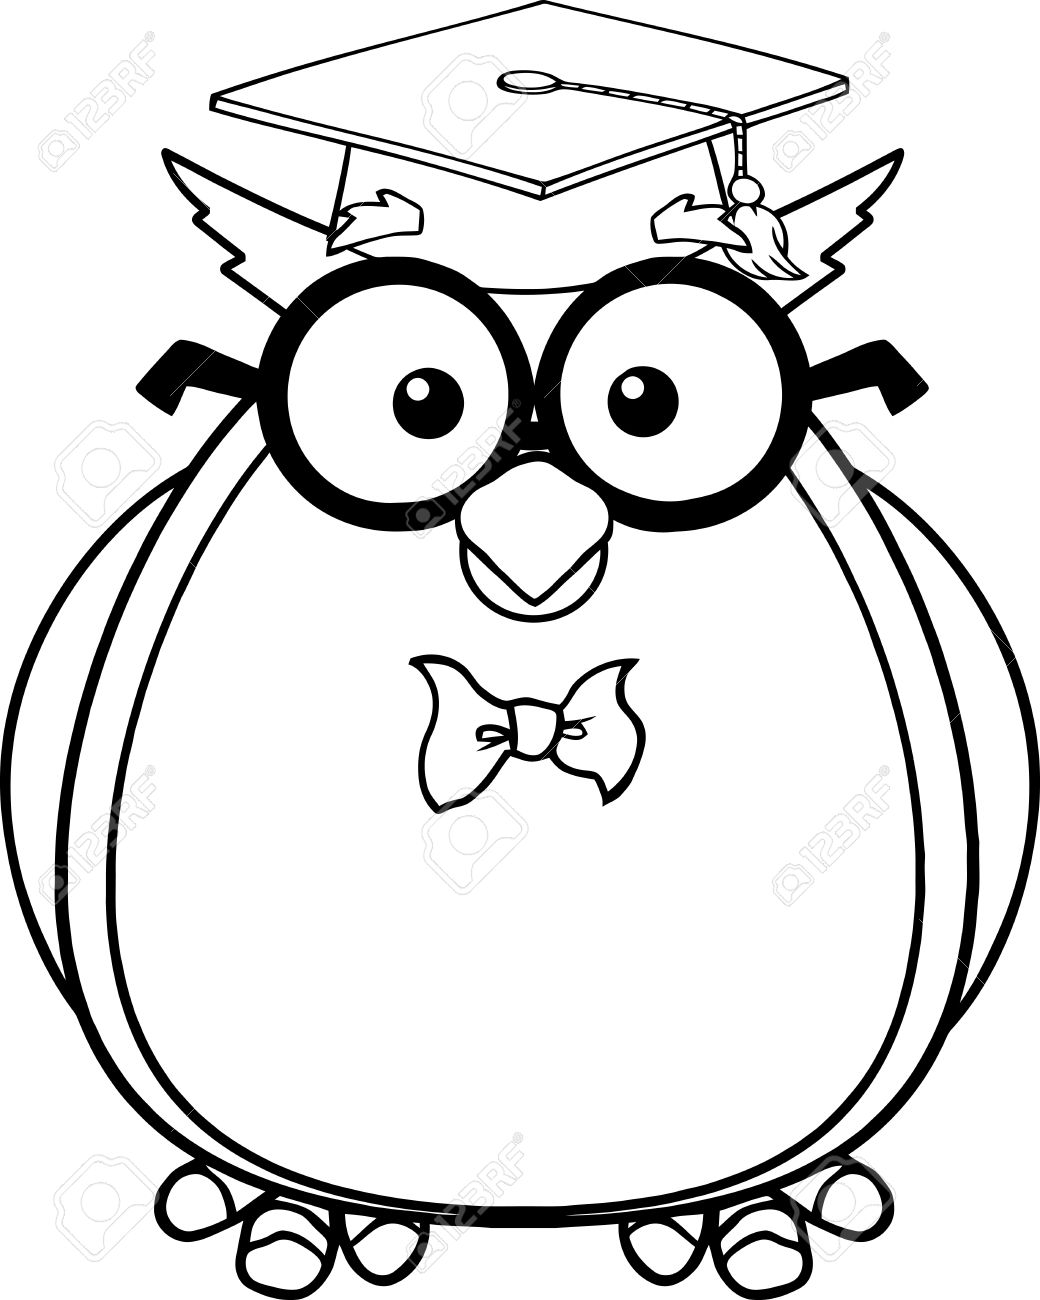 Owl Clipart Black And White | Free download on ClipArtMag